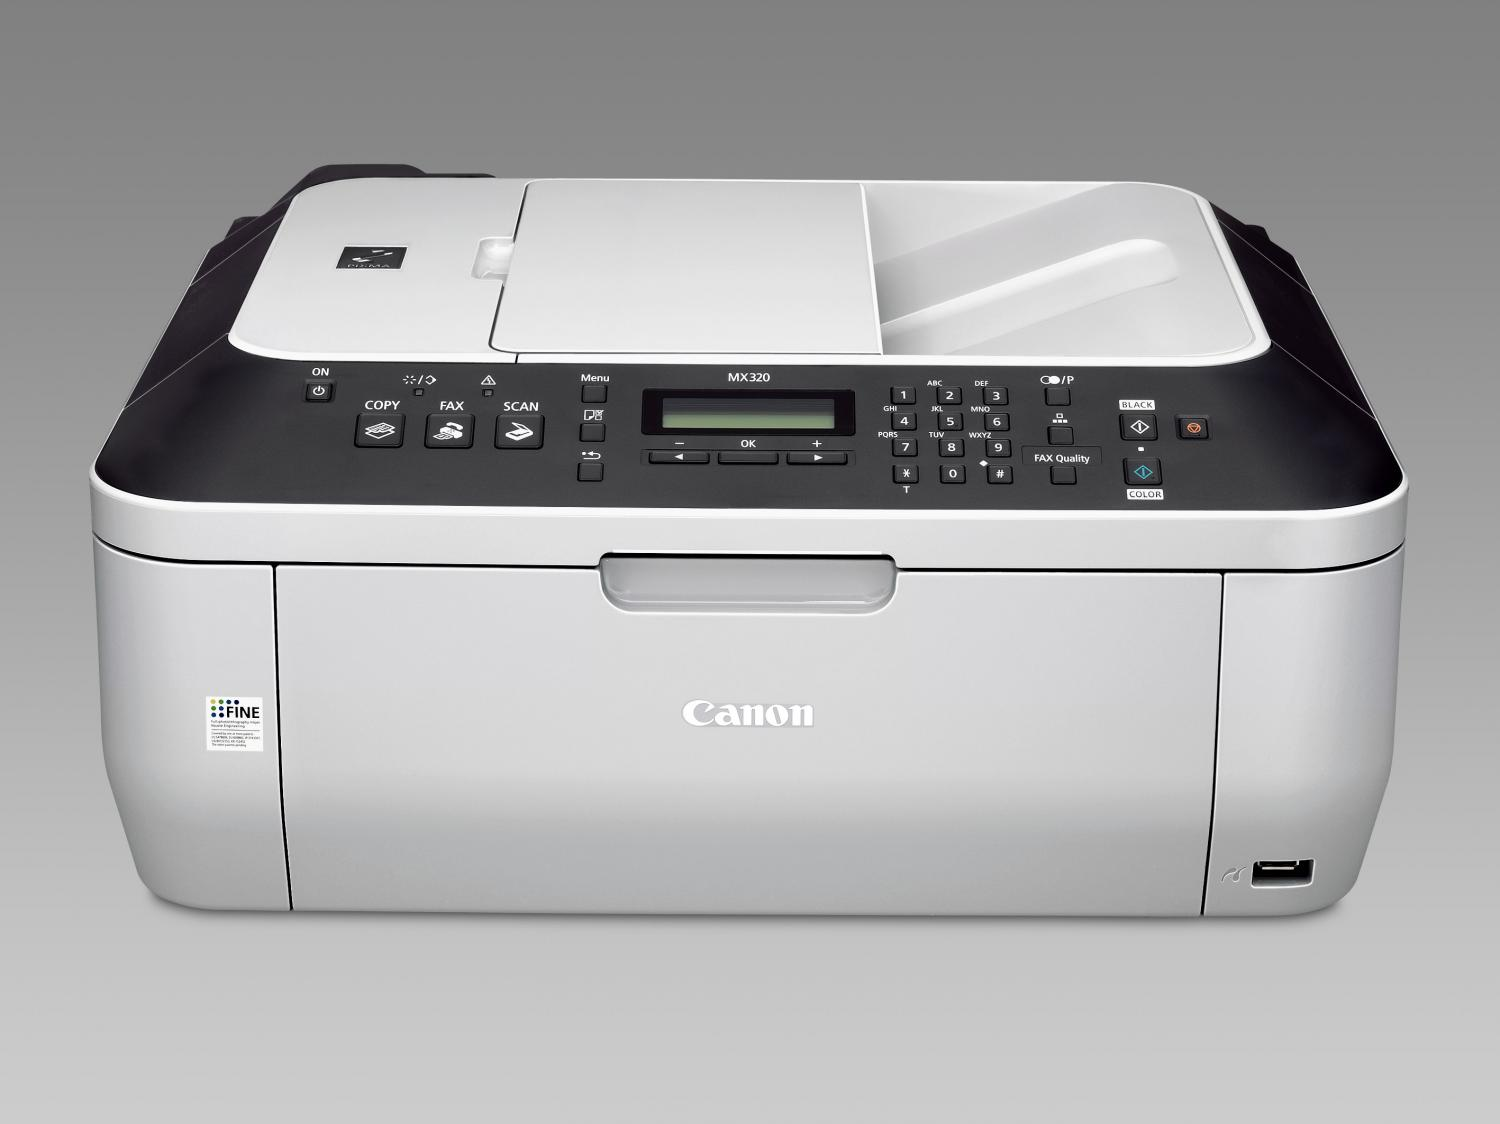 Canon Printer Drivers For Windows Xp